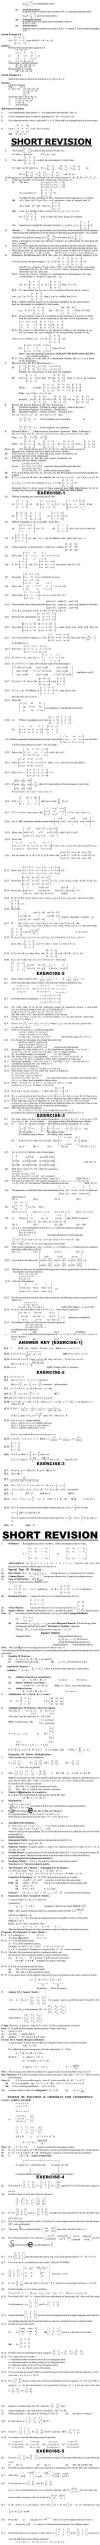 Maths Study Material - Chapter 5